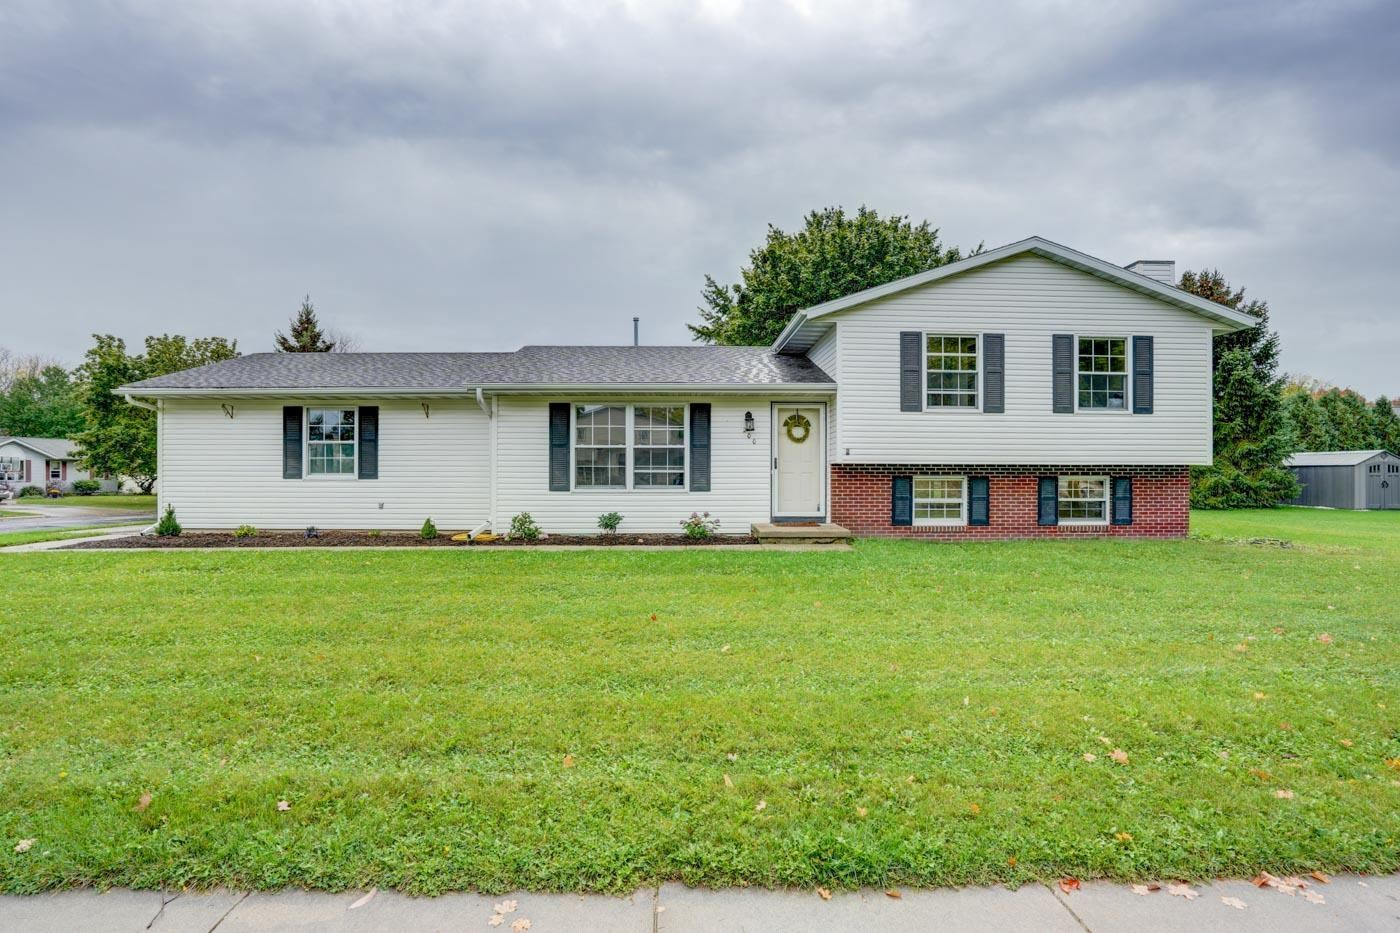 200 W Parkview St, Cottage Grove, WI 53527 - #: 1916580